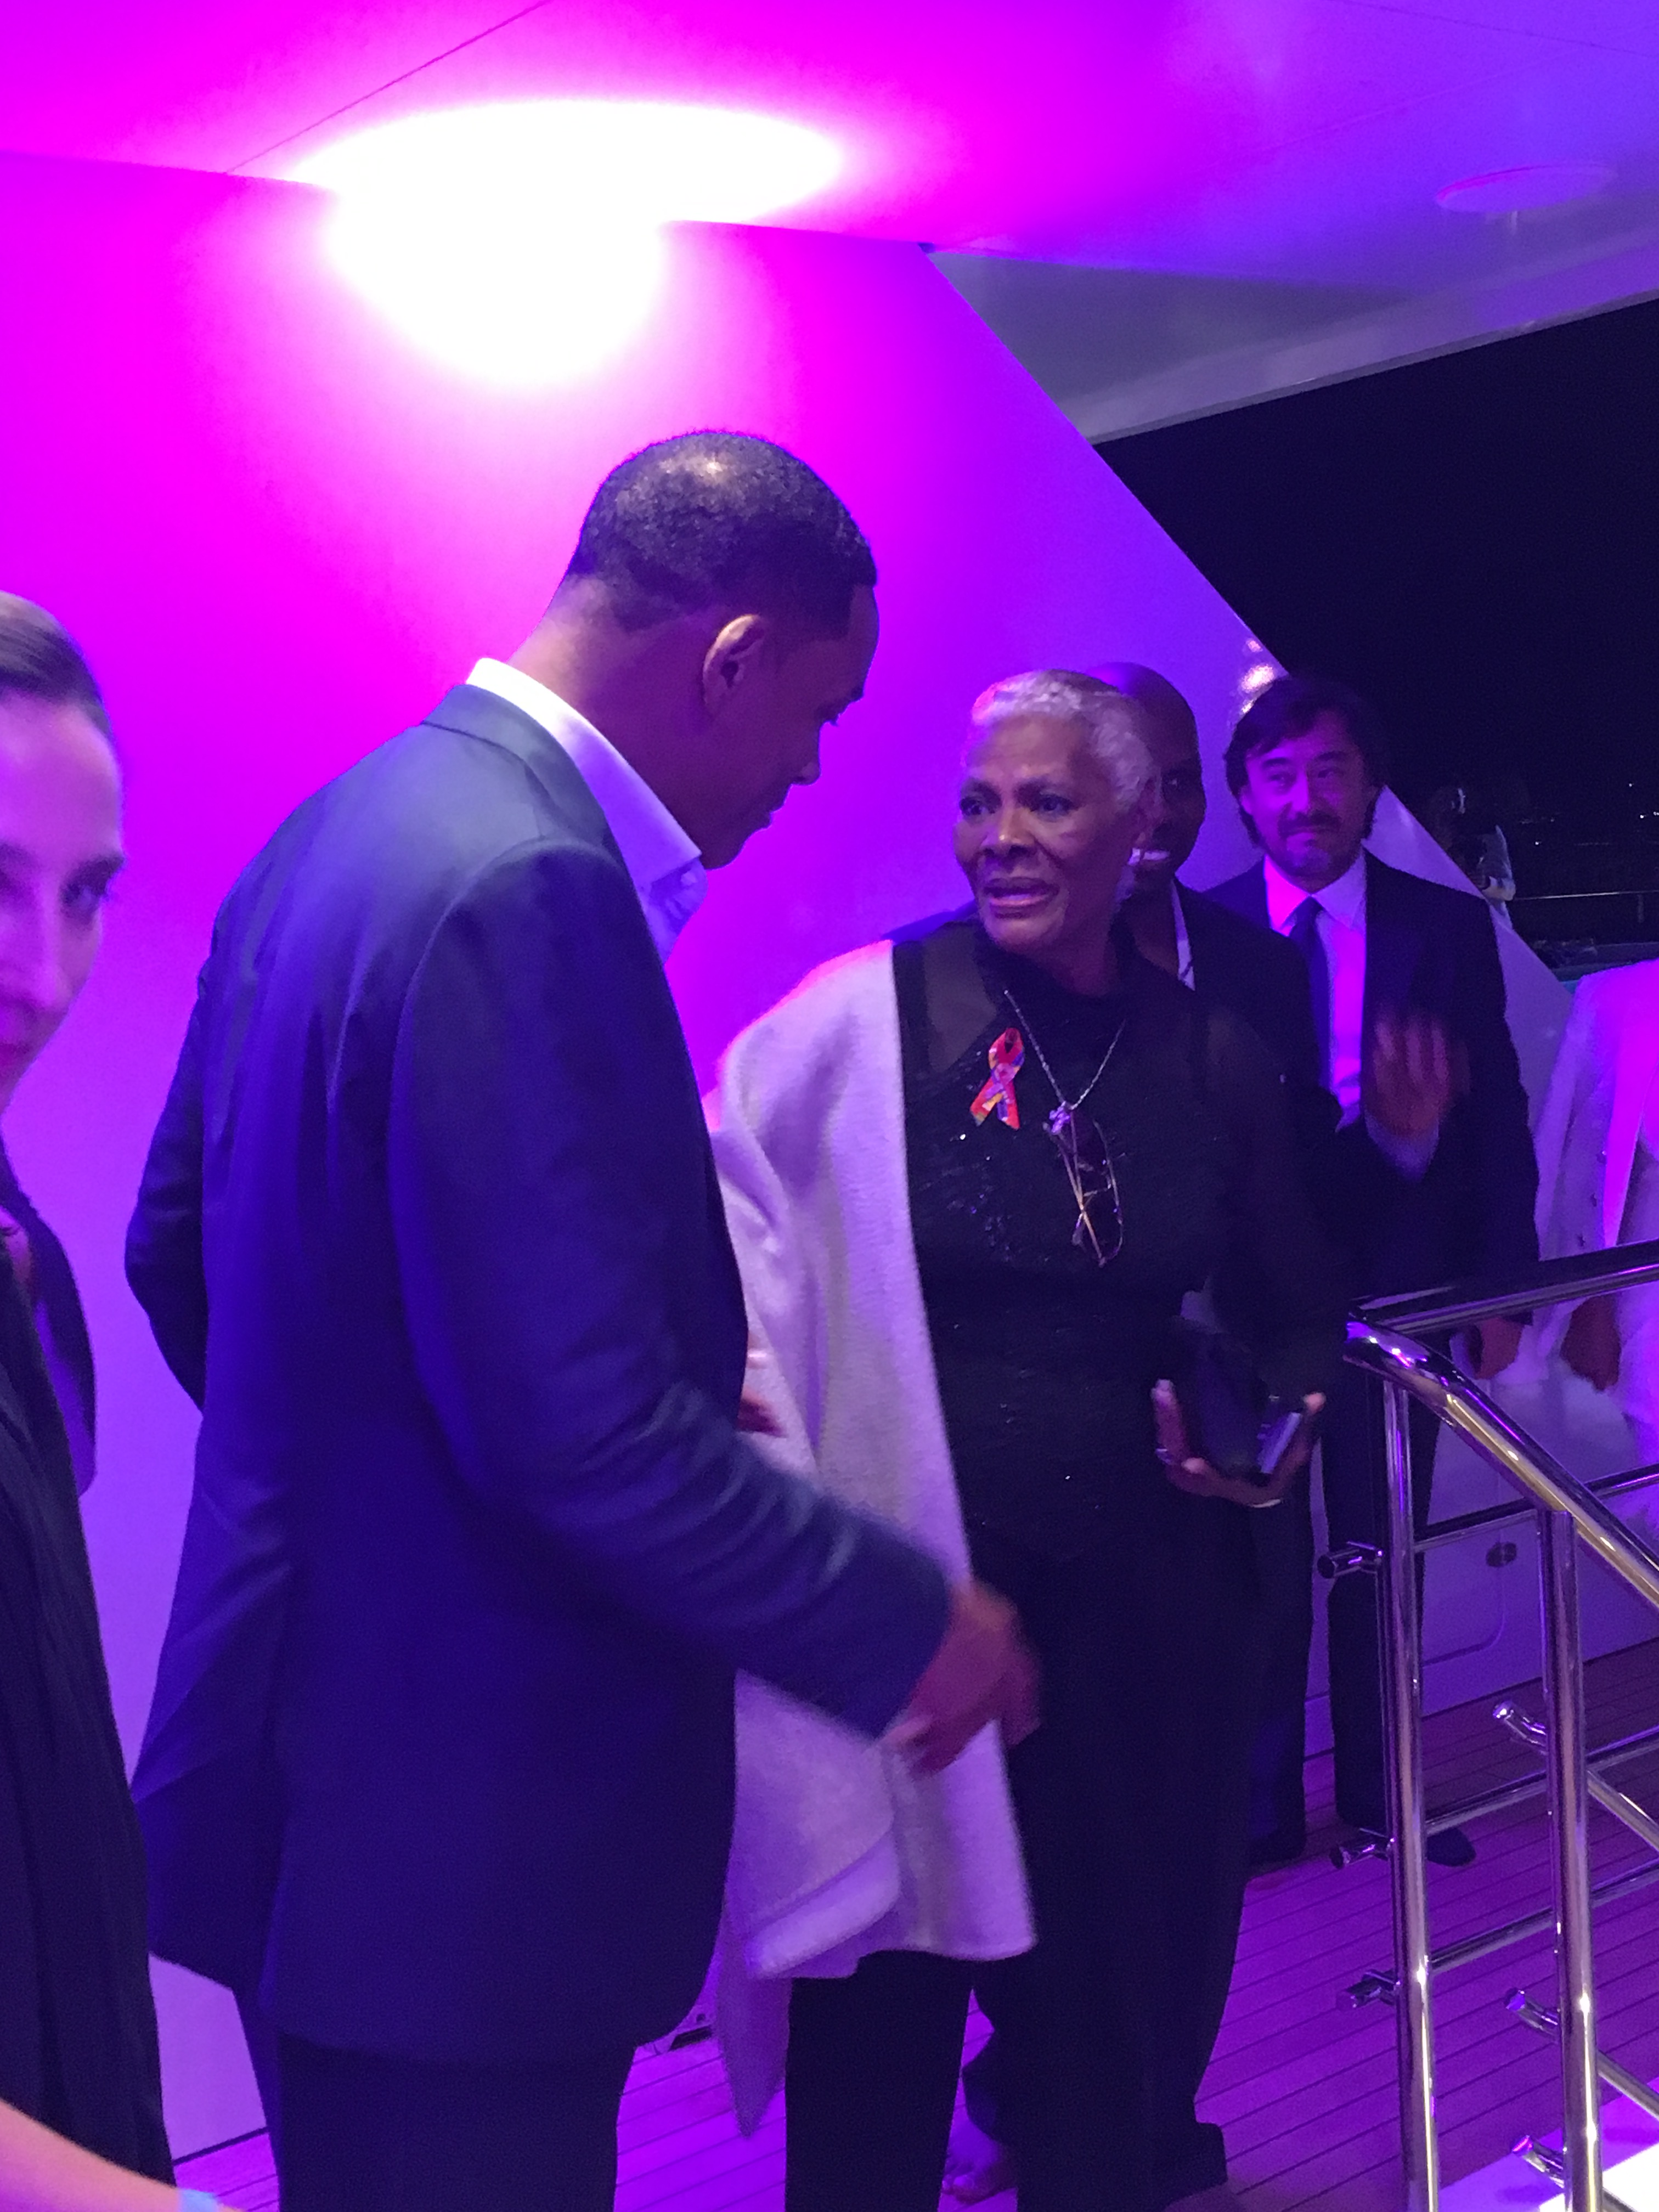 Cannes Film Festival: Will Smith speaking with Dionne Warwick at the Persol party